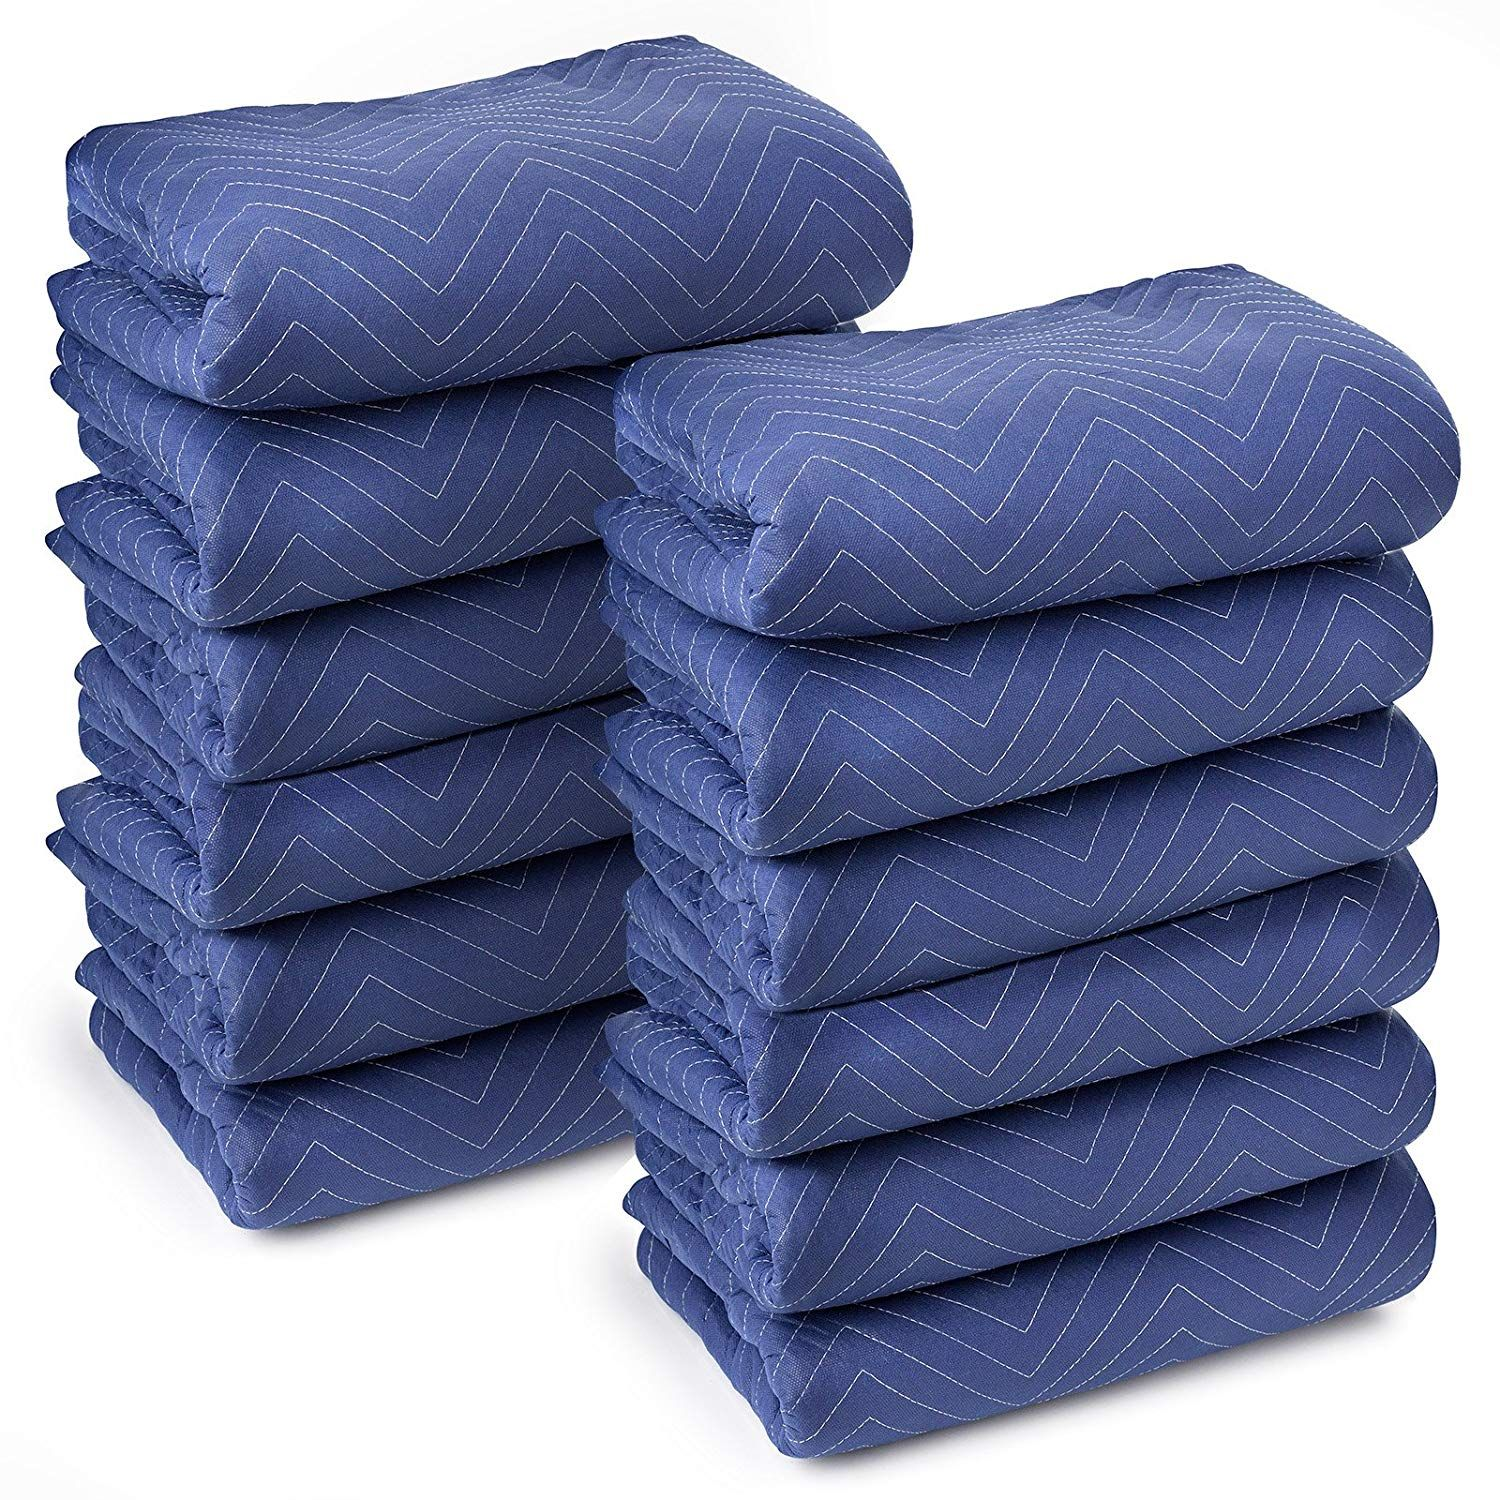 Sure Max 12 Moving And Packing Blankets Deluxe Pro 80 X 72 40 Lb Dz Weight Professional Quilted Shipping F Furniture Pads Moving Blankets Moving Pads